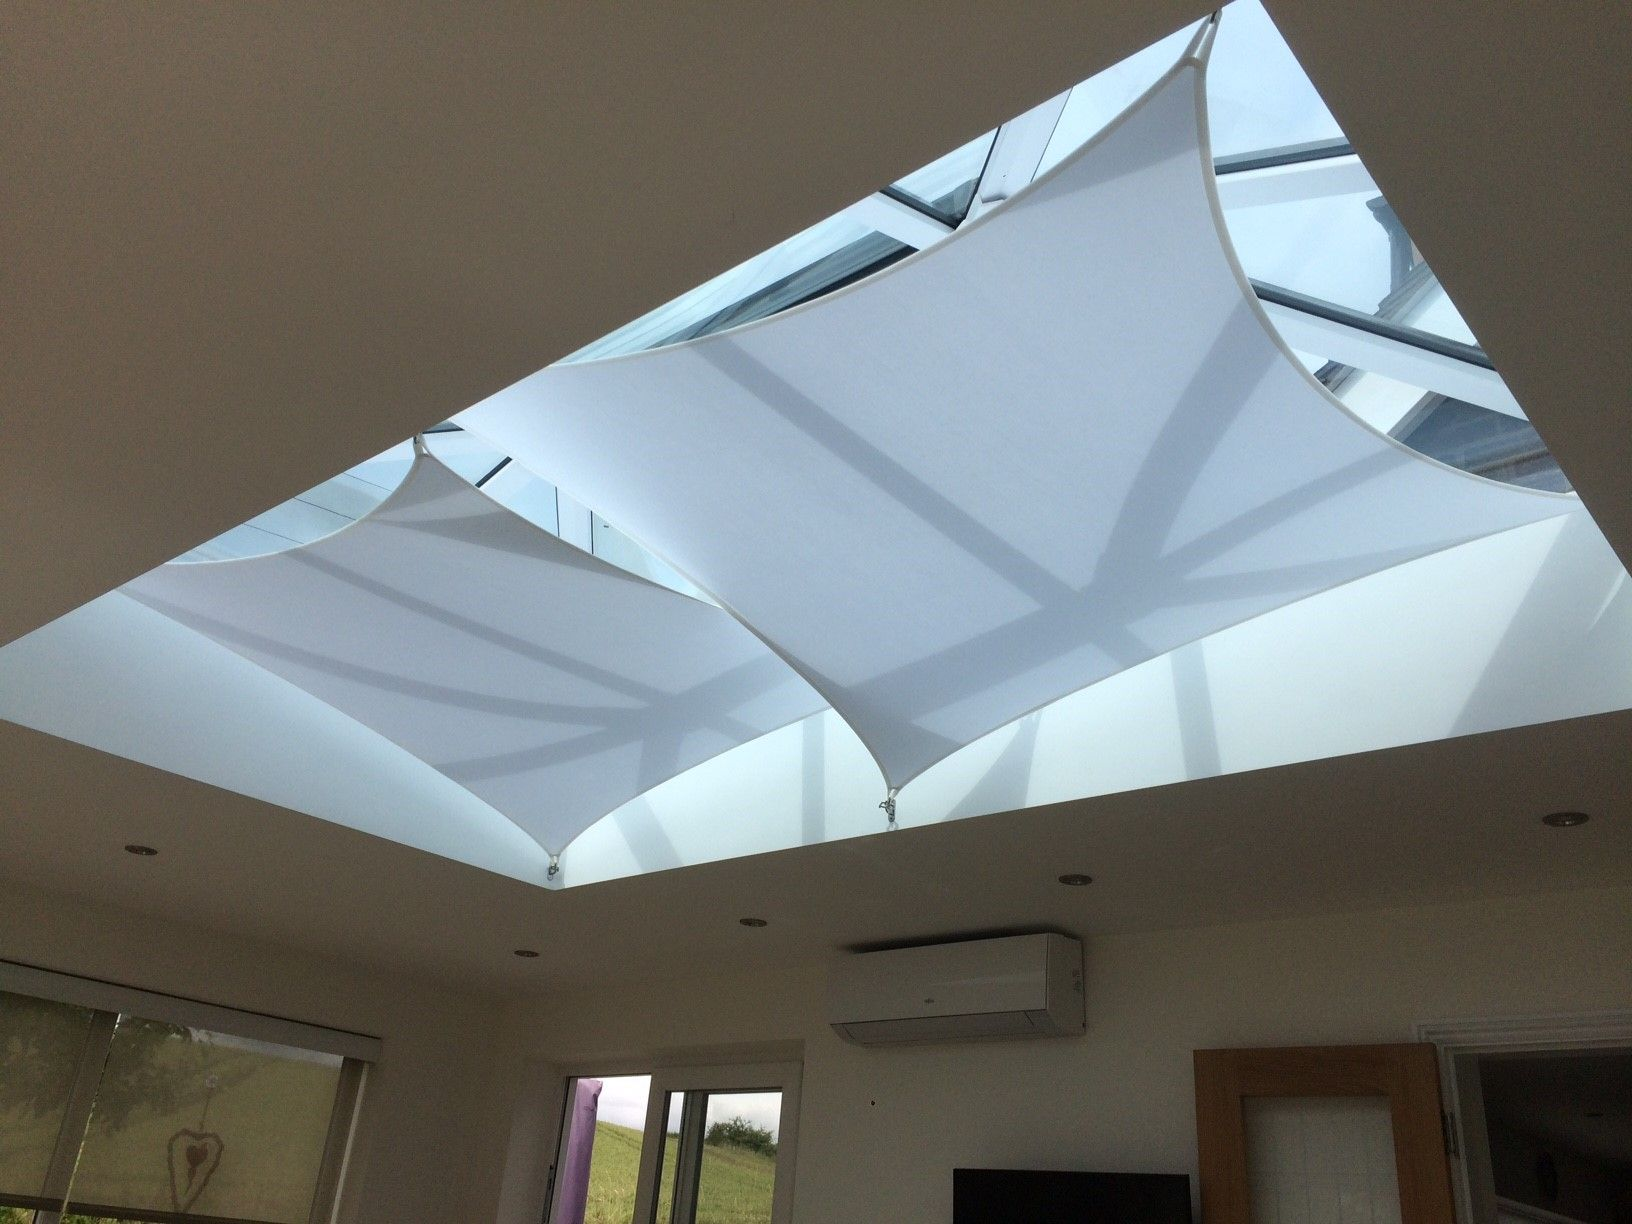 Pin By Graciela Dubon On Conservatory Designs Skylight Shade Conservatory Roof Blinds Skylight Blinds